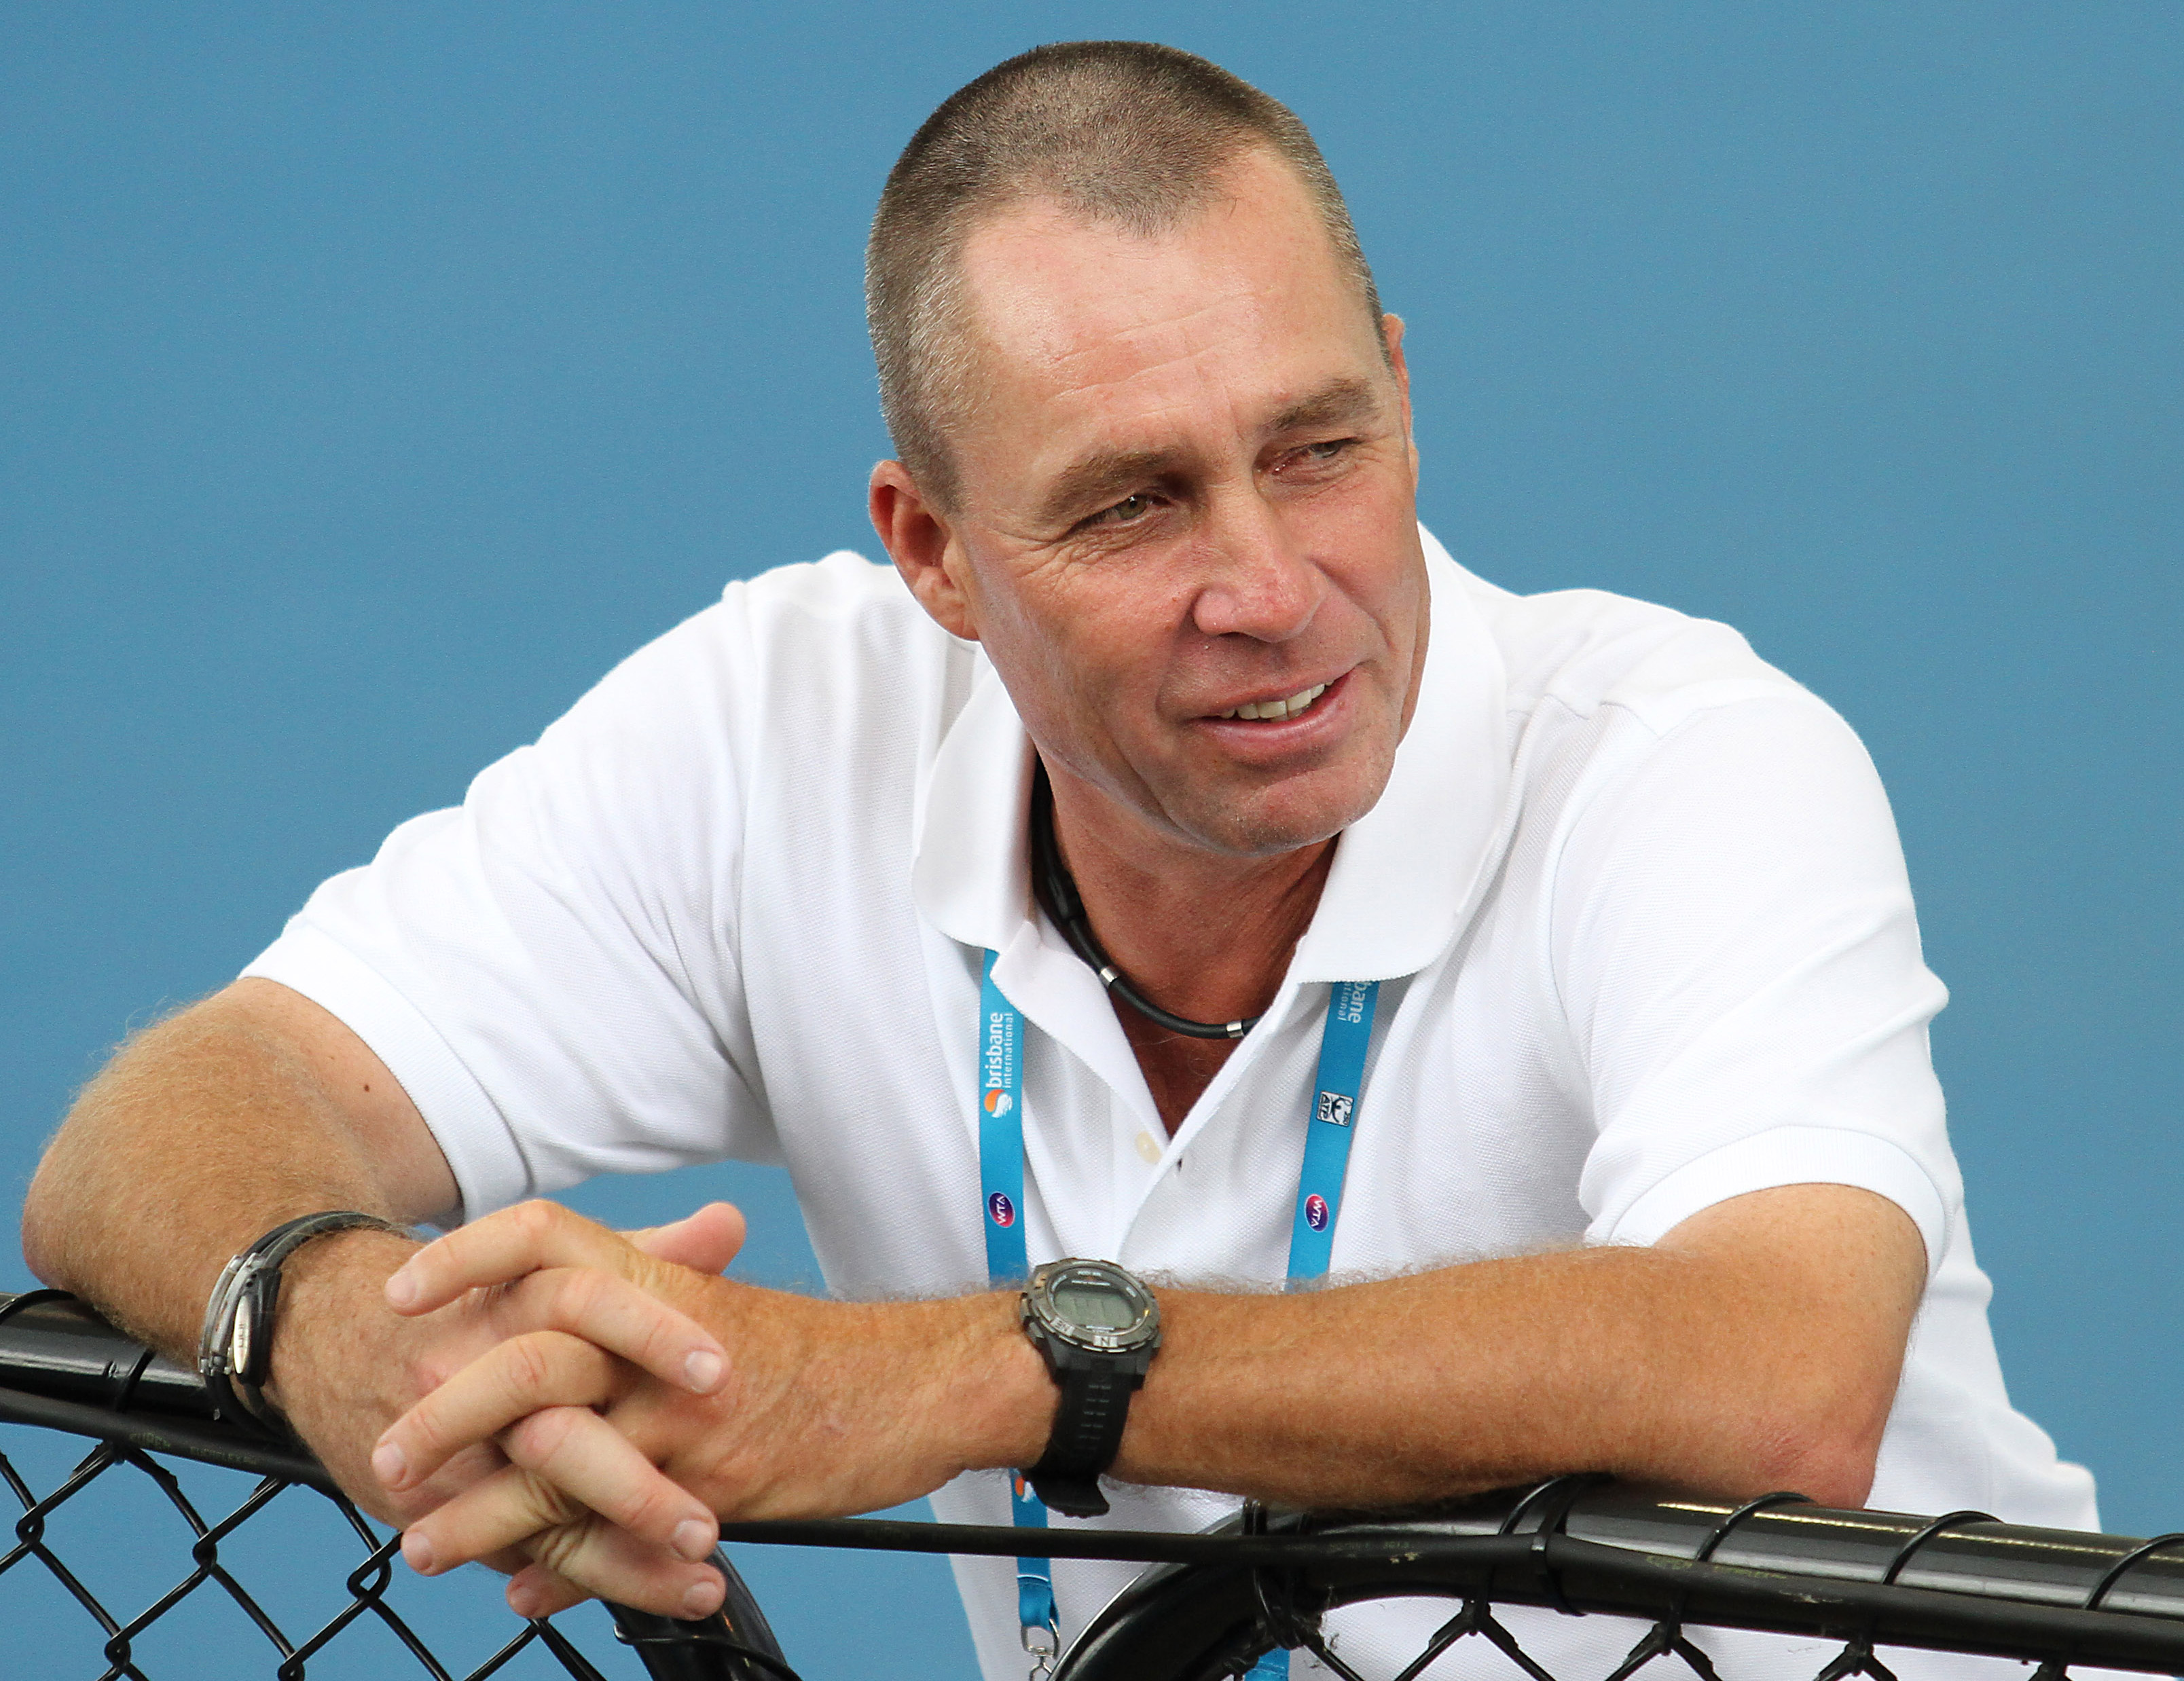 FILE - In this Jan. 7, 2012, file photo, Ivan Lendl watches Andy Murray during a training session for the Brisbane International tennis tournament in Brisbane, Australia. Lendl is getting back into coaching to try to groom the next American tennis champio